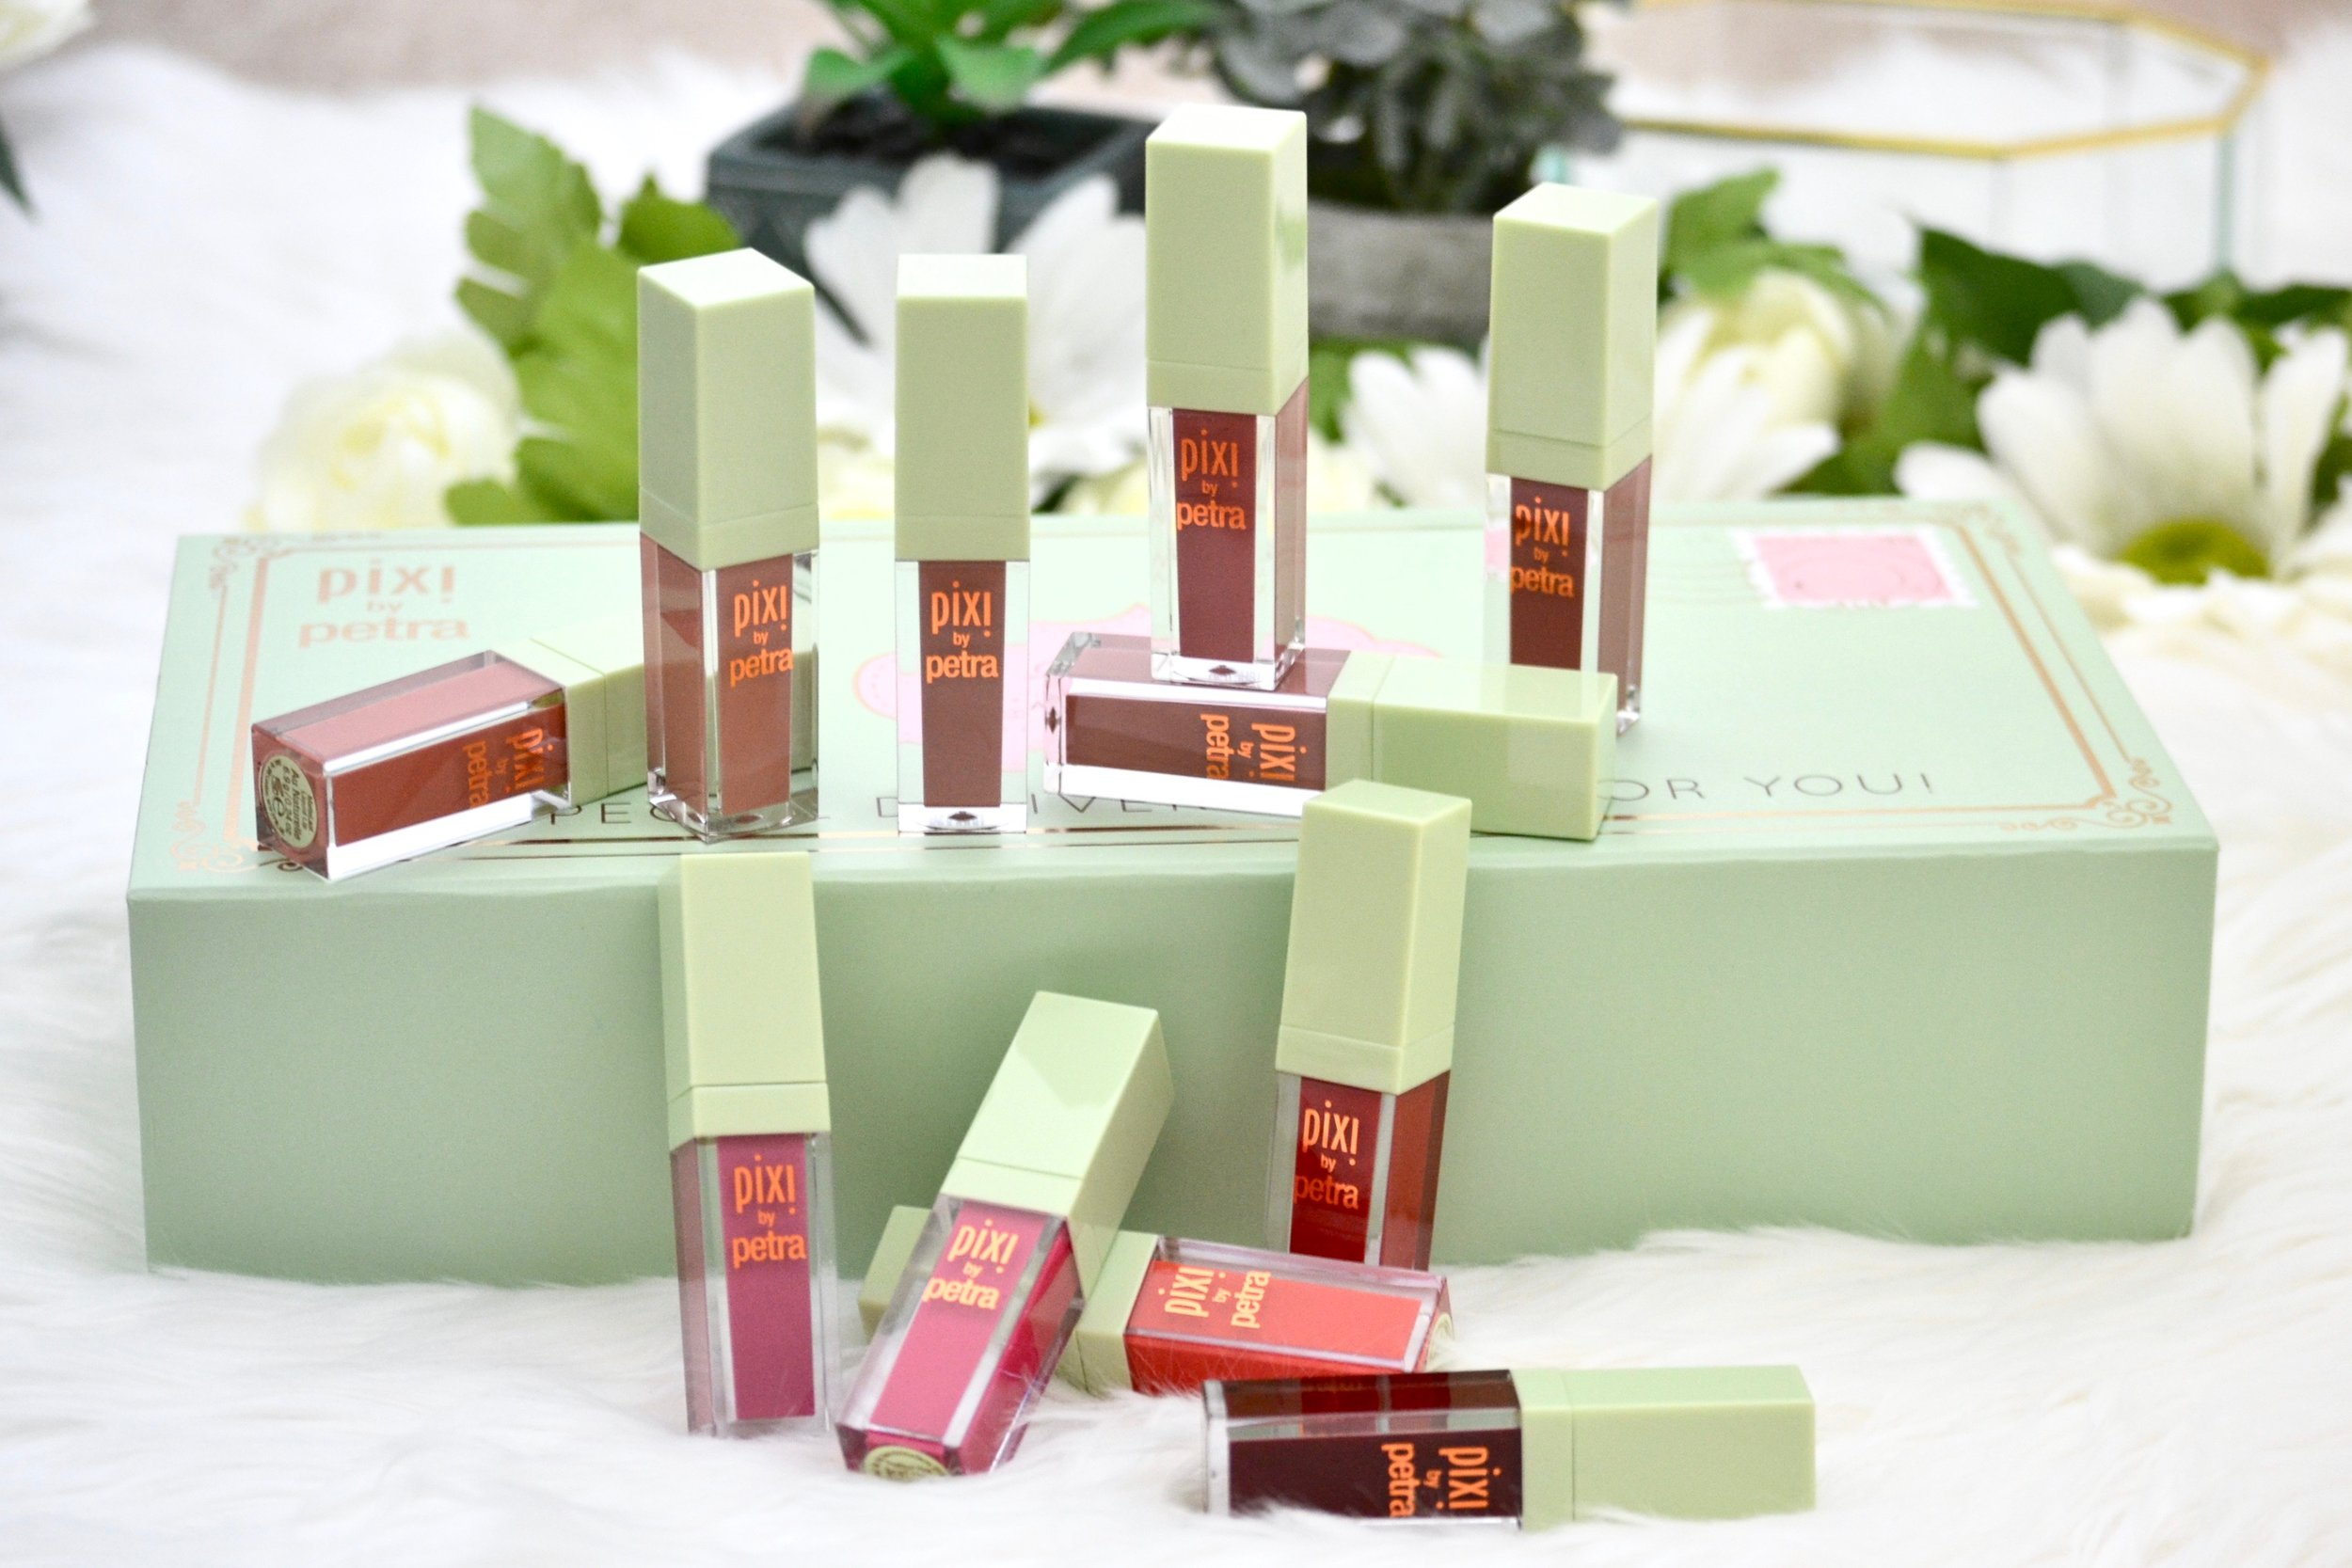 Your search for the best affordable/drugstore matte liquid lipstick has finally ended! The Pixi Beauty MatteLast Liquid Lip will become your new favorite! I've never tried a better matte liquid lipstick before this one. The Pixi Beauty MatteLast Liquid Lip is the best! Check out my full review and swatches of the entire shade range! #pixibeauty #matteliquidlipstick #drugstoremakeup #affordable